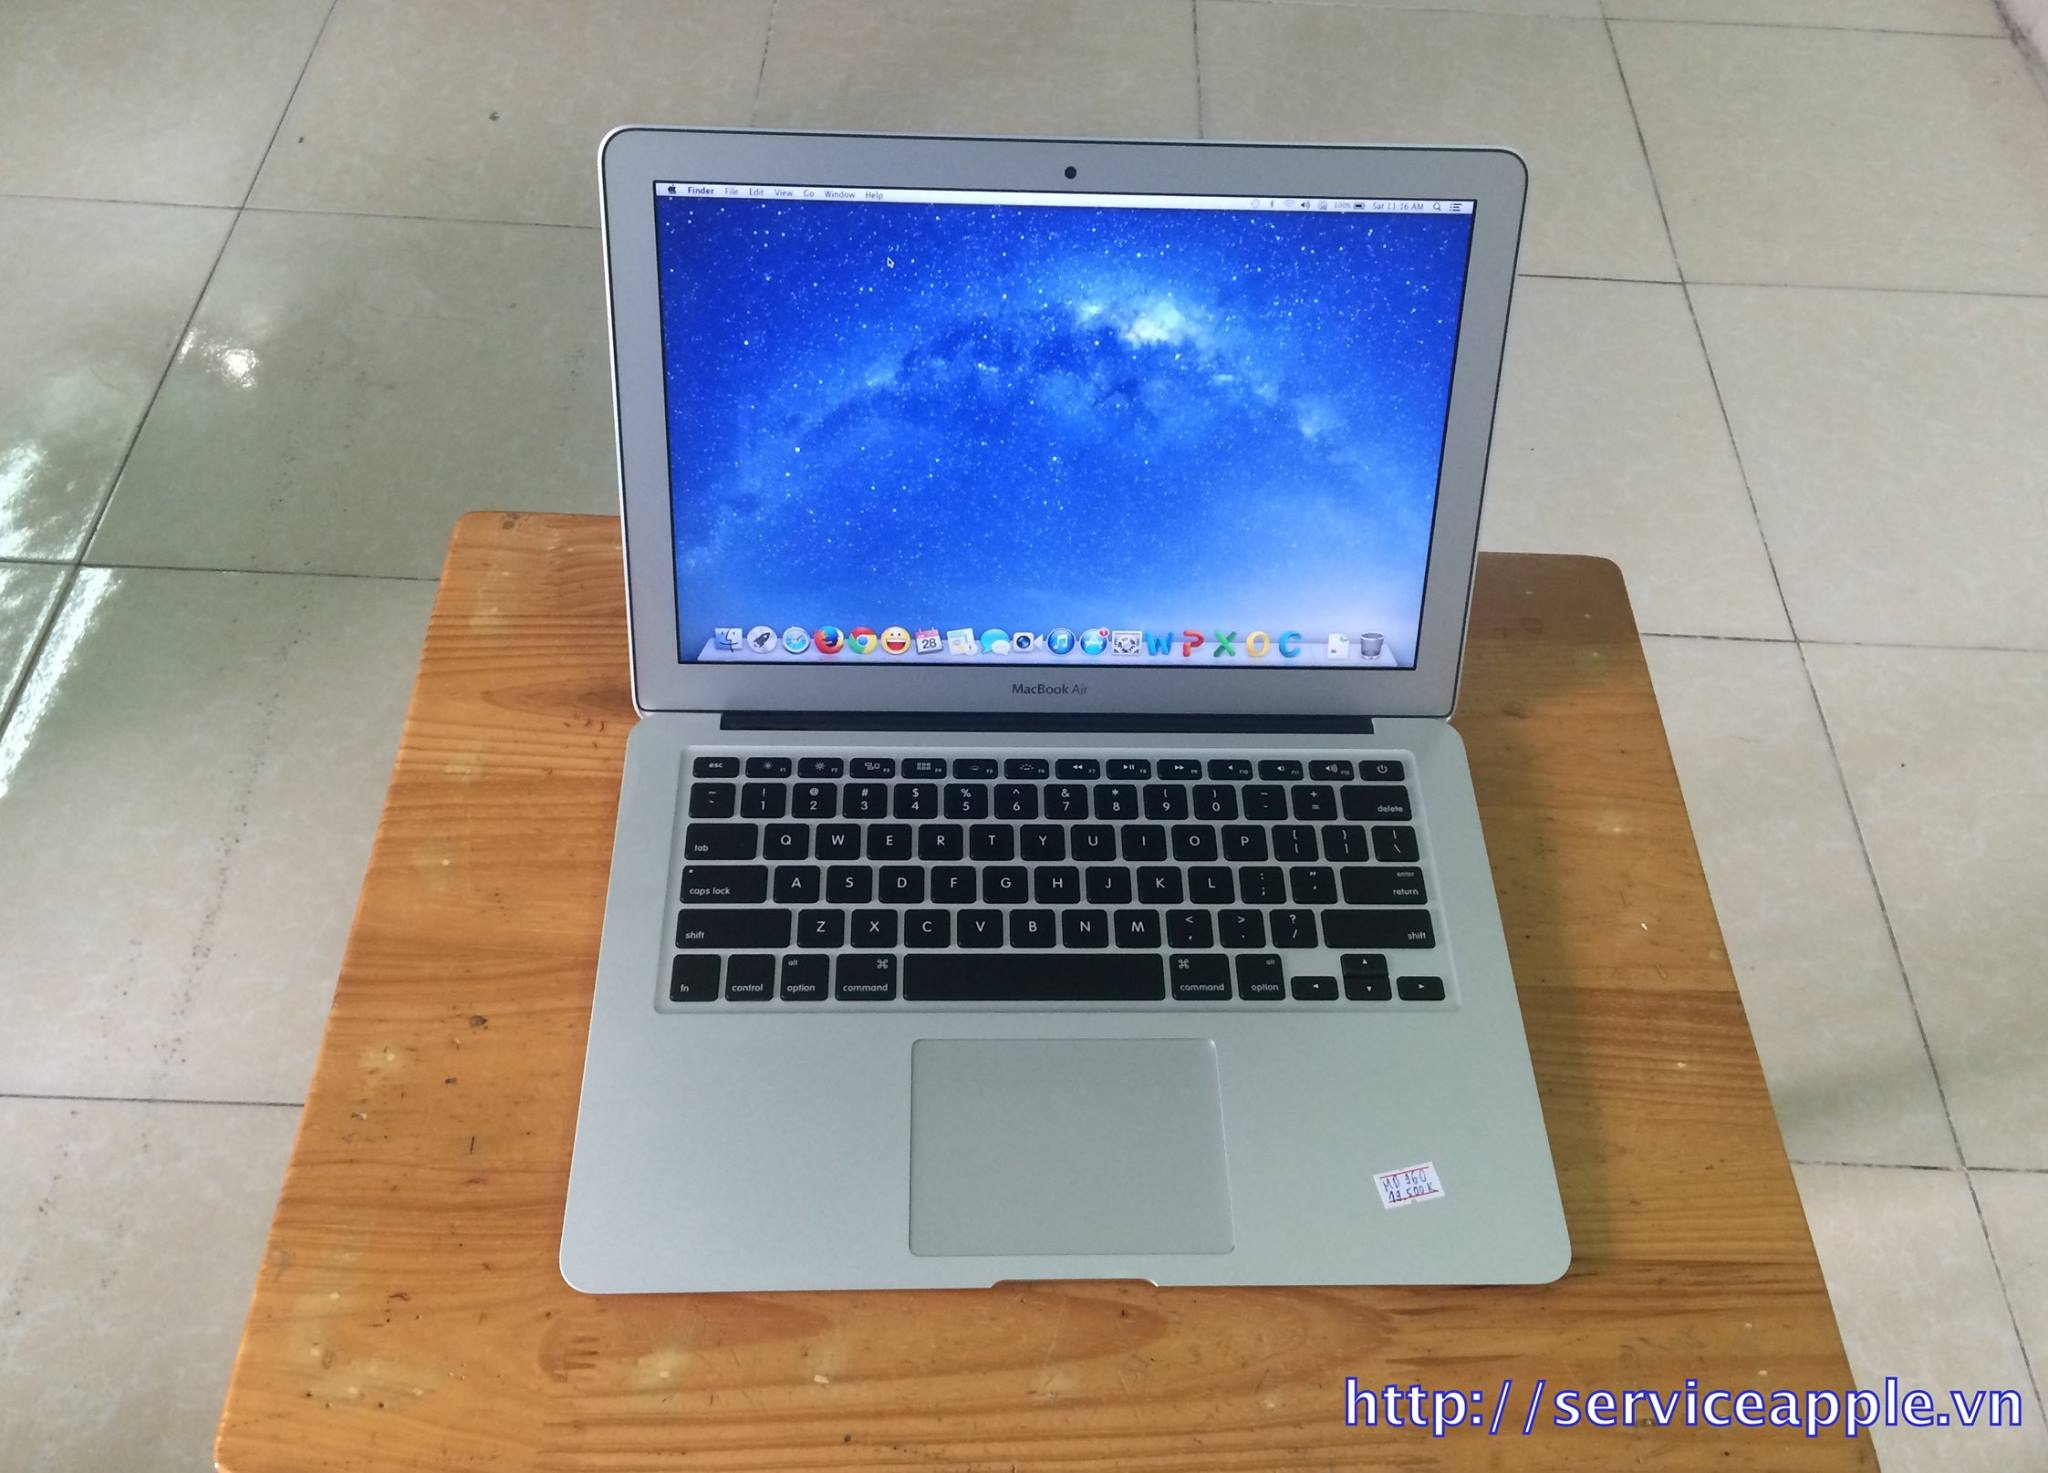 ban macbook air 232_2.jpg